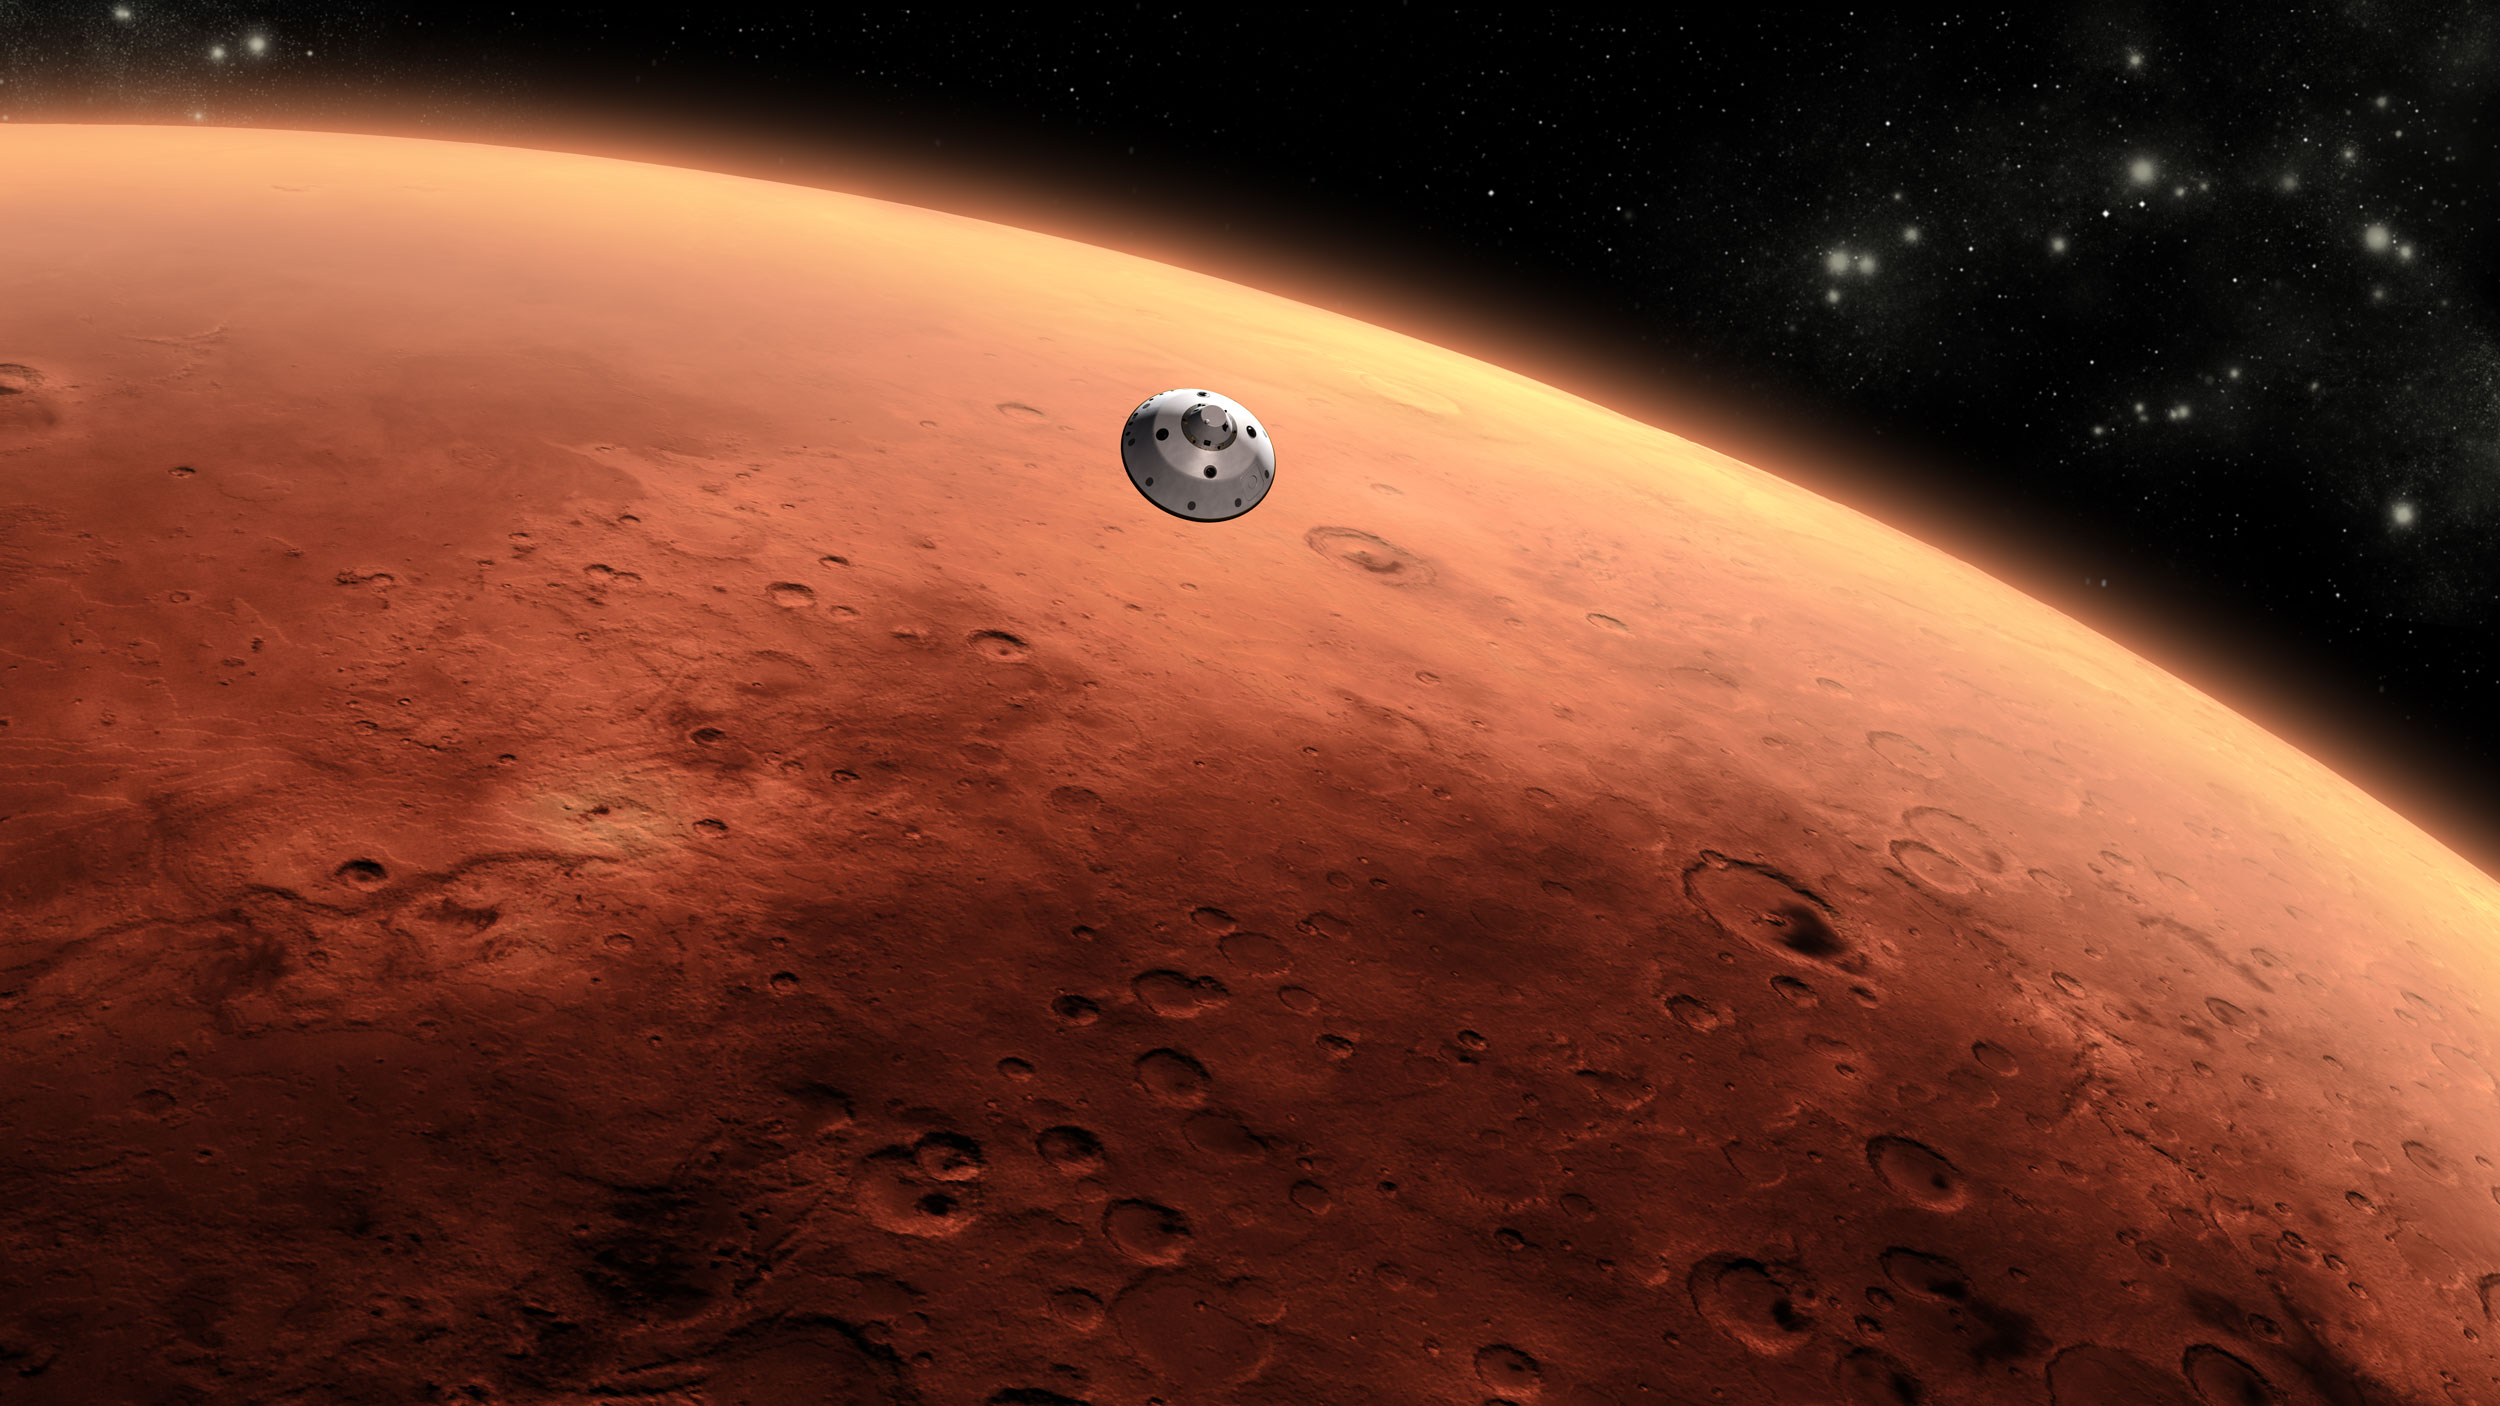 High radiation levels of Mars makes astronaut entry dangerous. Credit: JPL